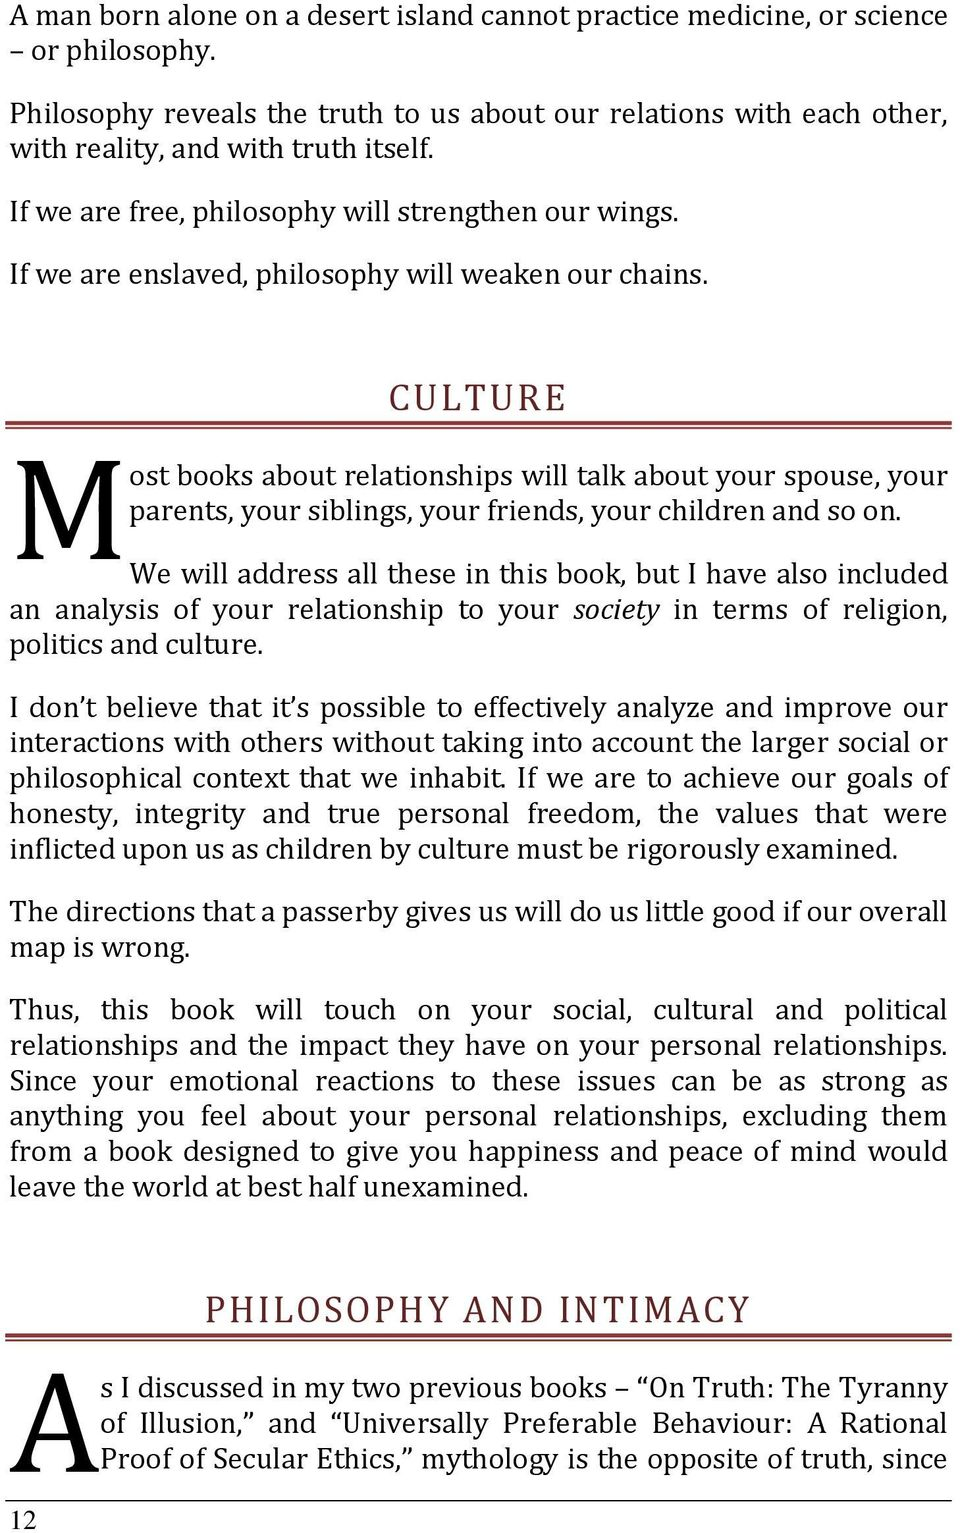 CULTURE Most books about relationships will talk about your spouse, your parents, your siblings, your friends, your children and so on.